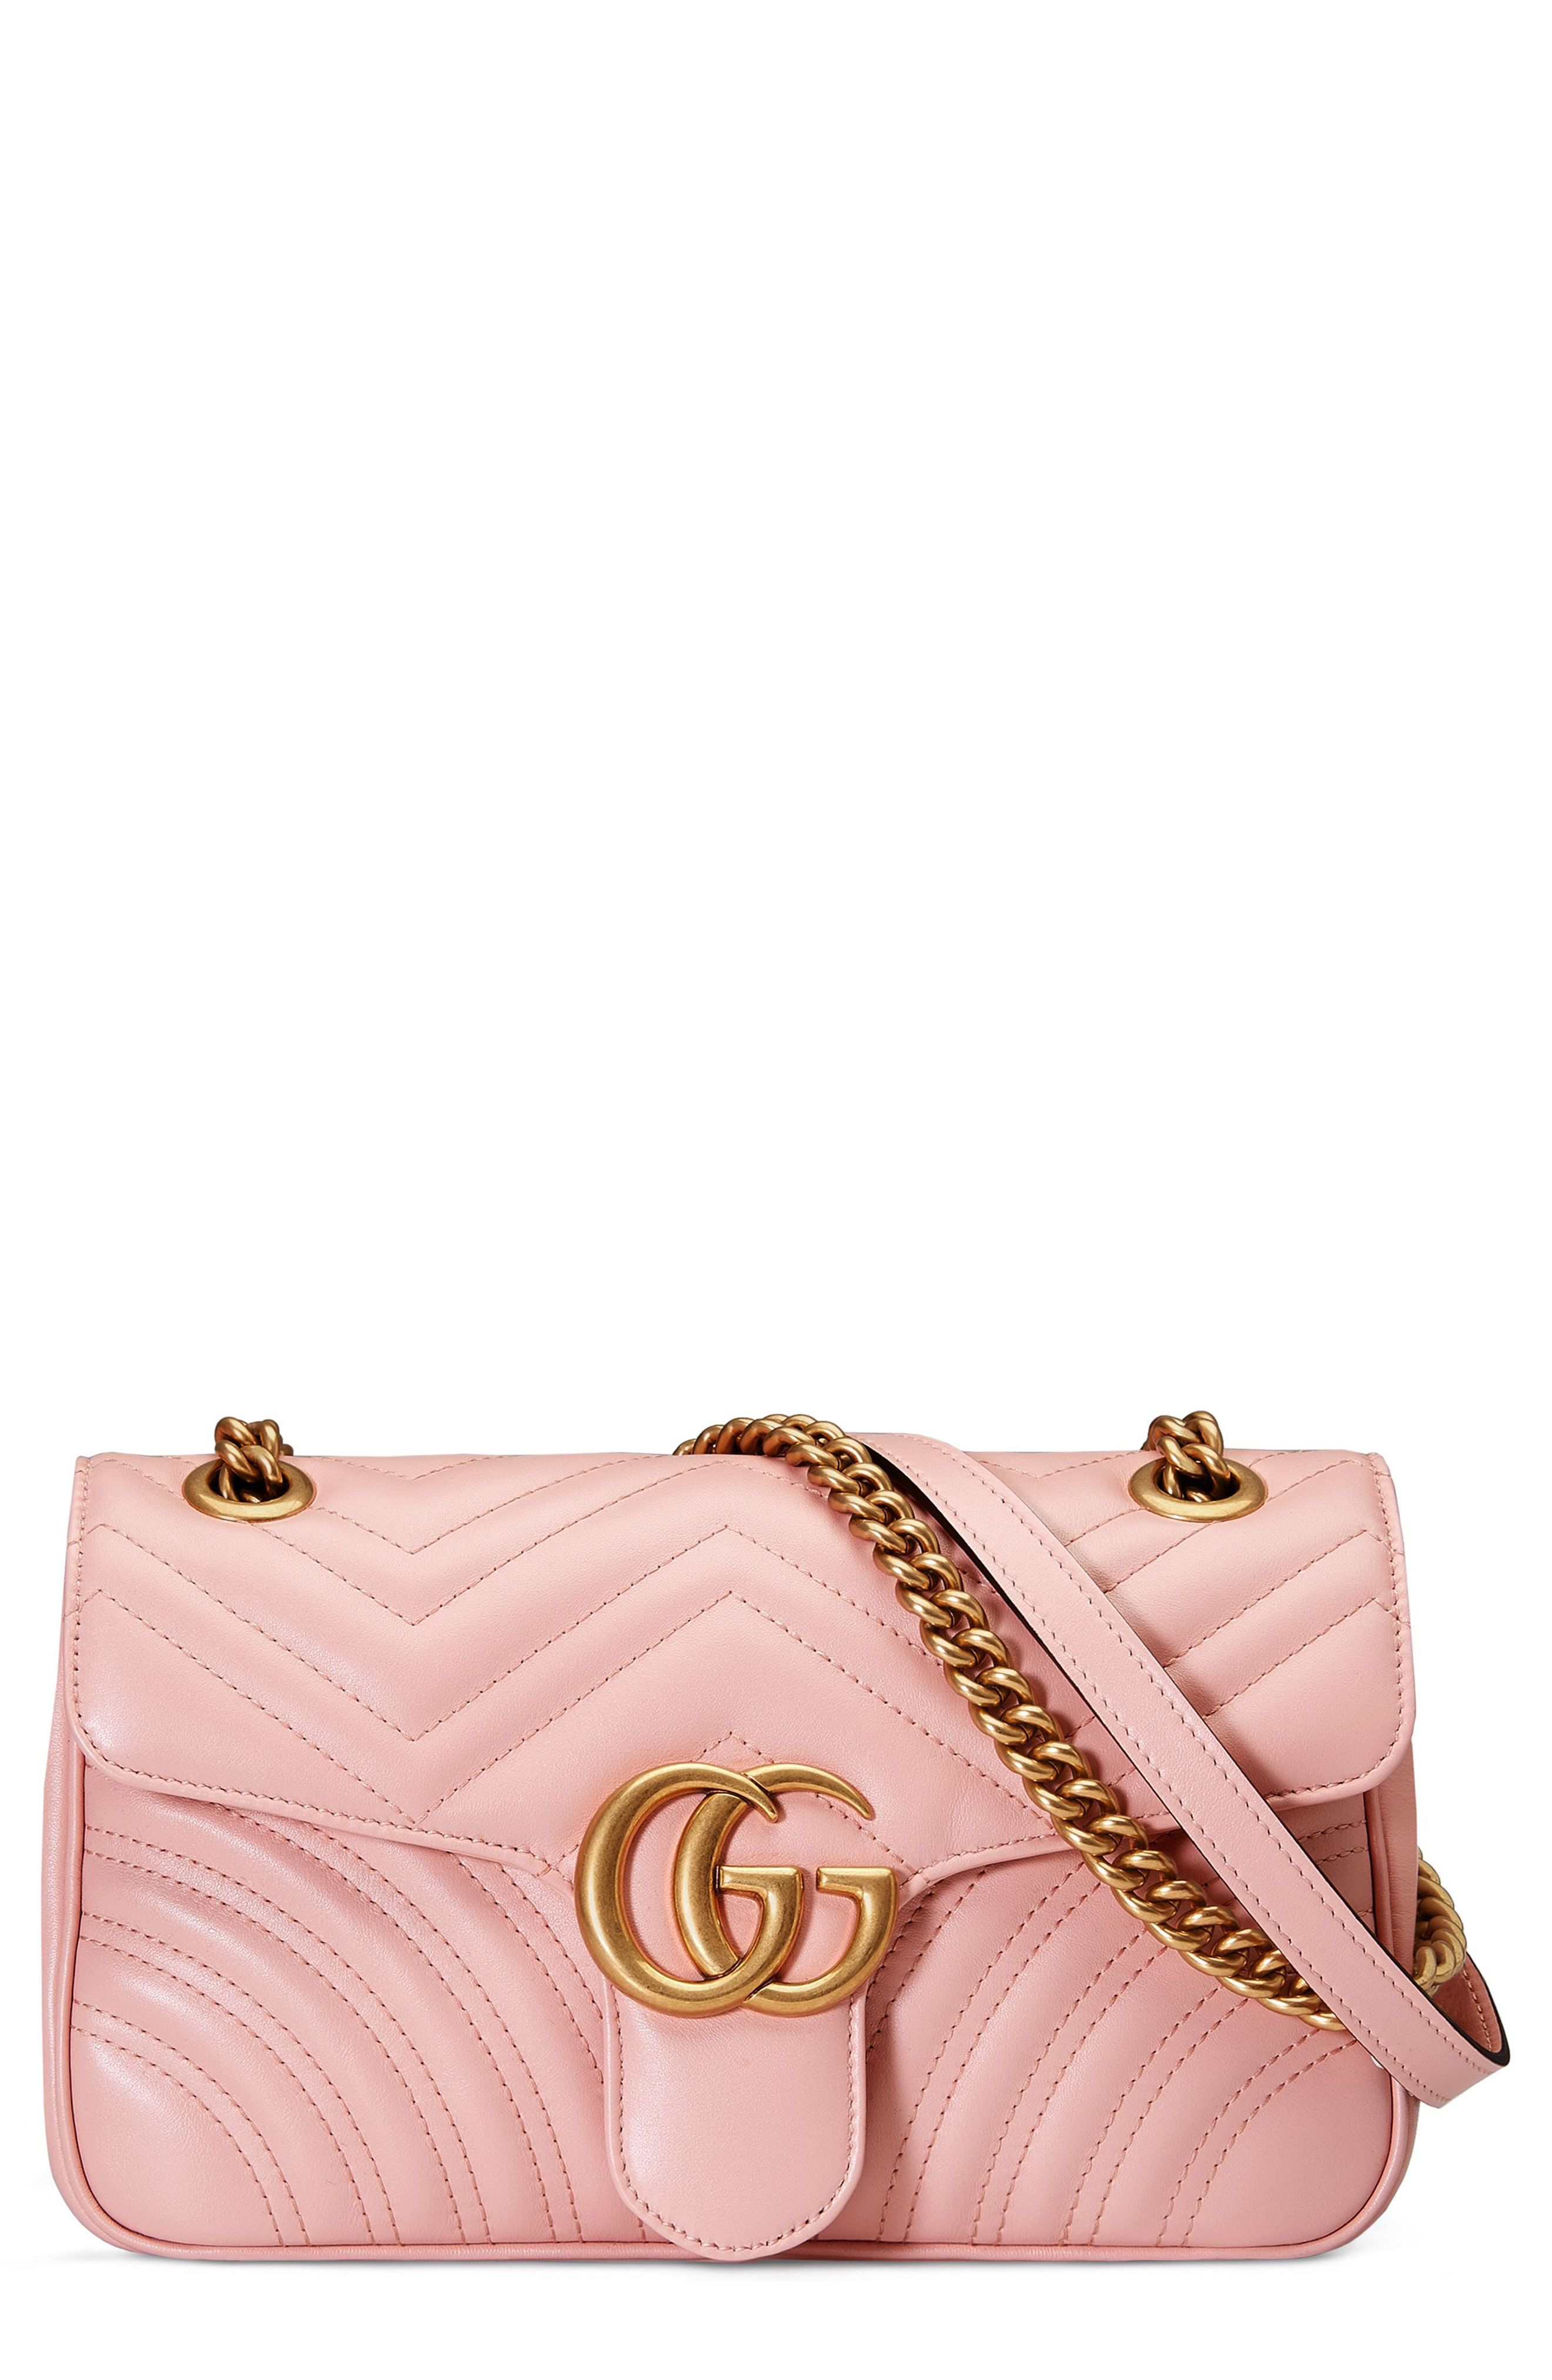 0819775c1b13 Gucci Small GG Marmont 2.0 Matelassé Leather Shoulder Bag available at  #Nordstrom